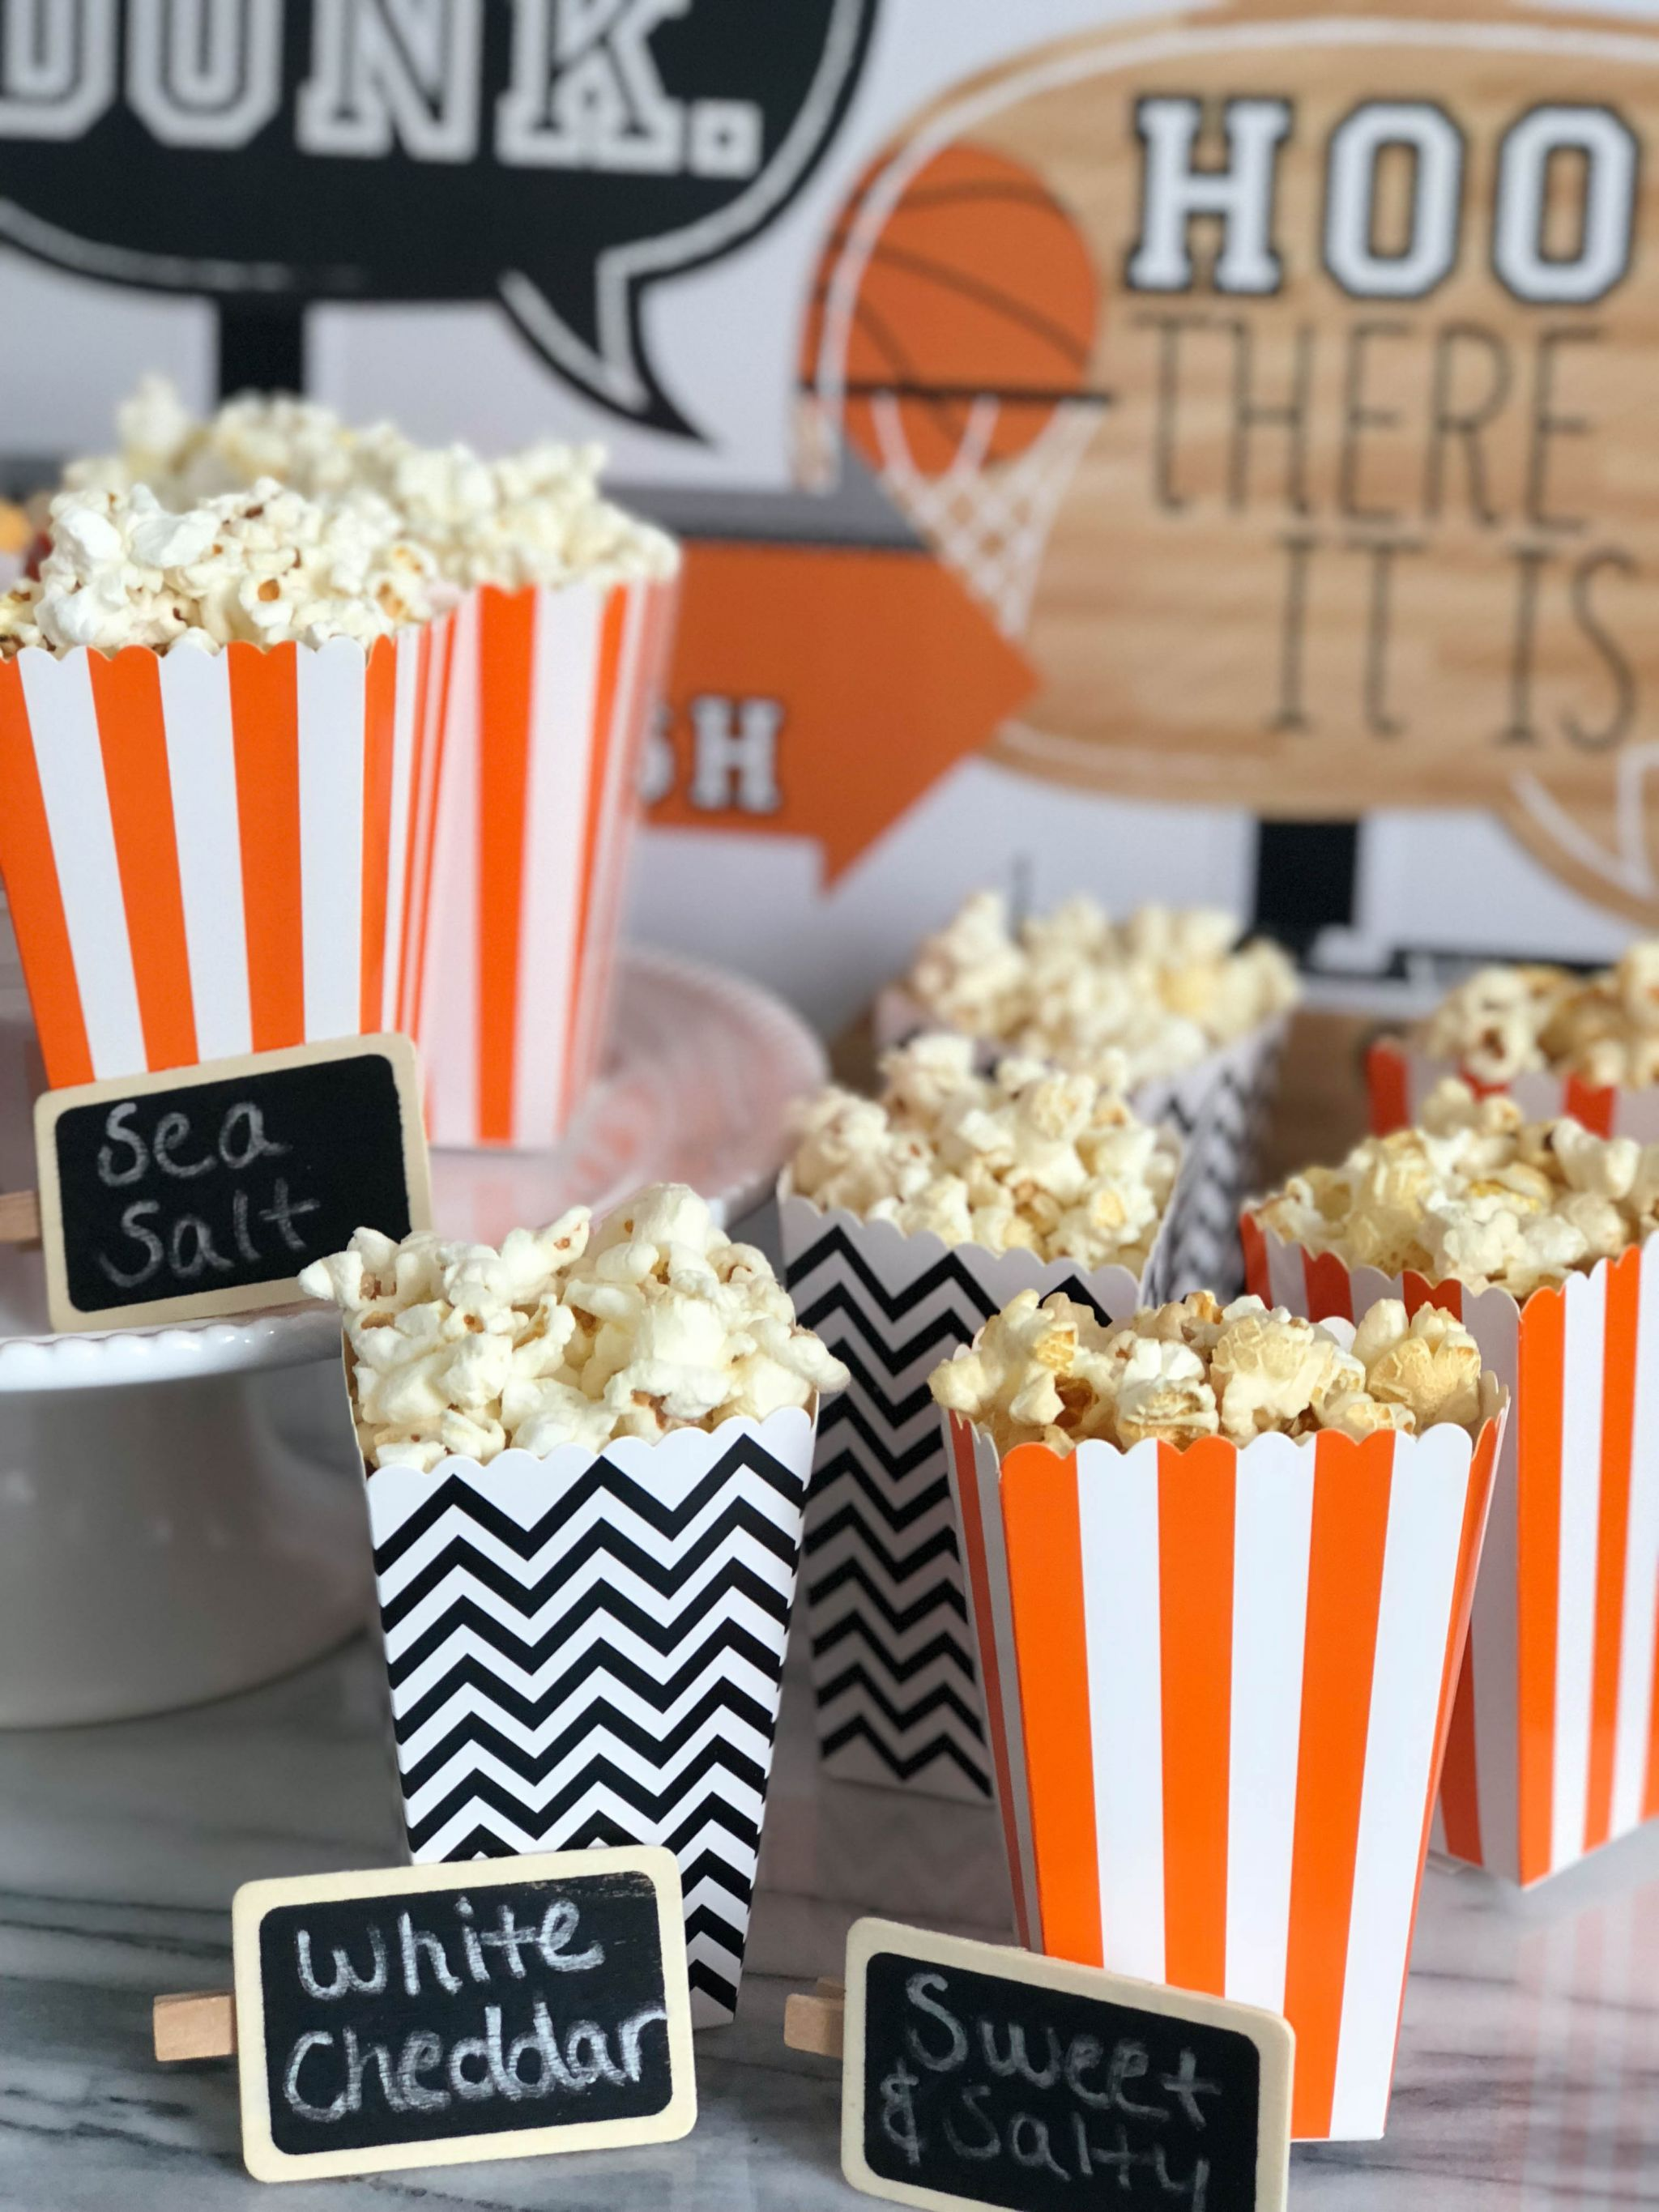 Basketball Game Day Popcorn Bar With Angie S Boomchickapop Game Day Snack Ideas Popcorn Bar Easy Snack Ideas Easy Entertaining 13 Boston Chic Party